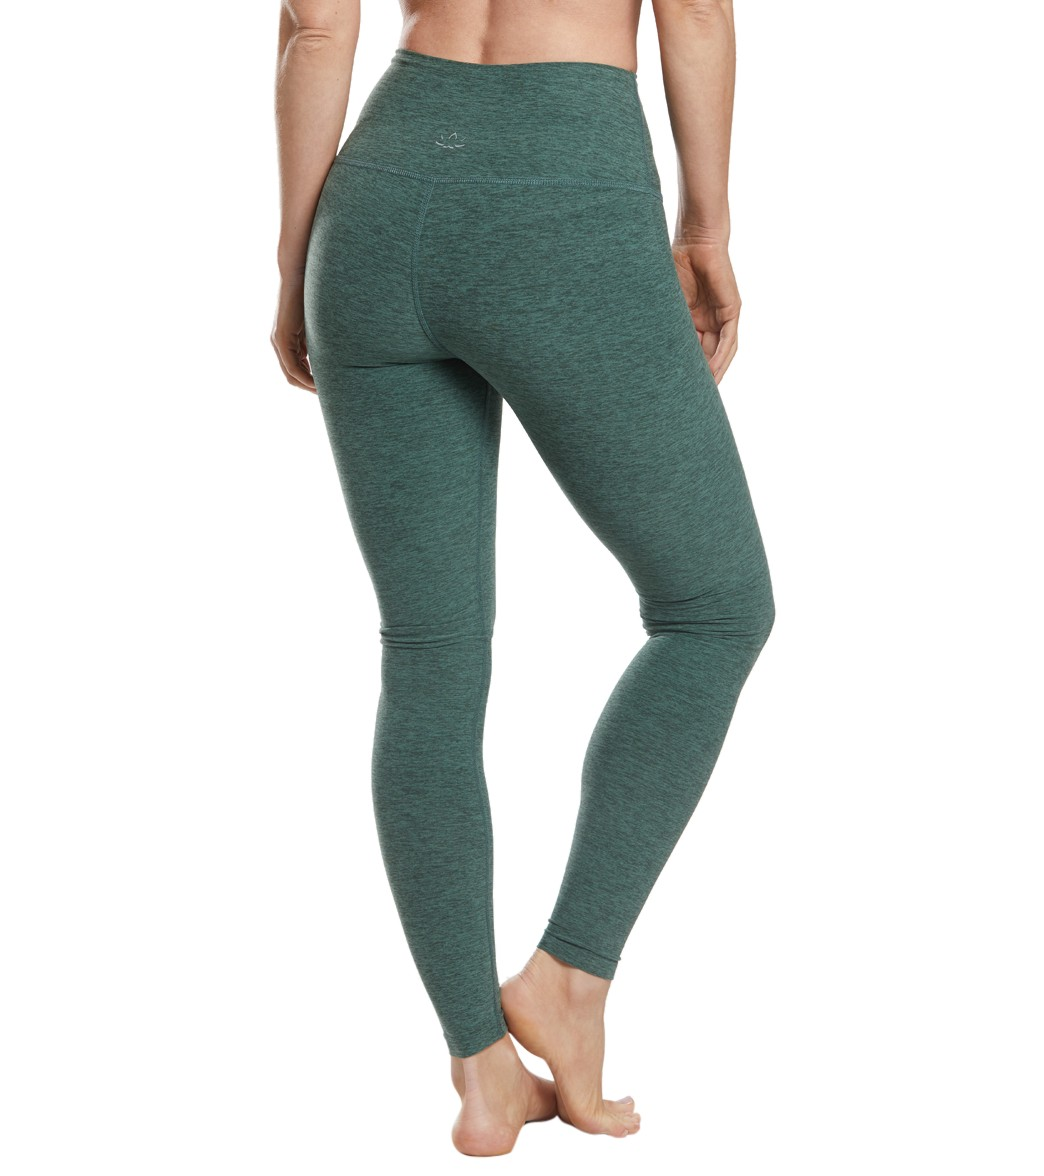 311338e24a00 Beyond Yoga Spacedye High Waisted Long Yoga Leggings at YogaOutlet ...